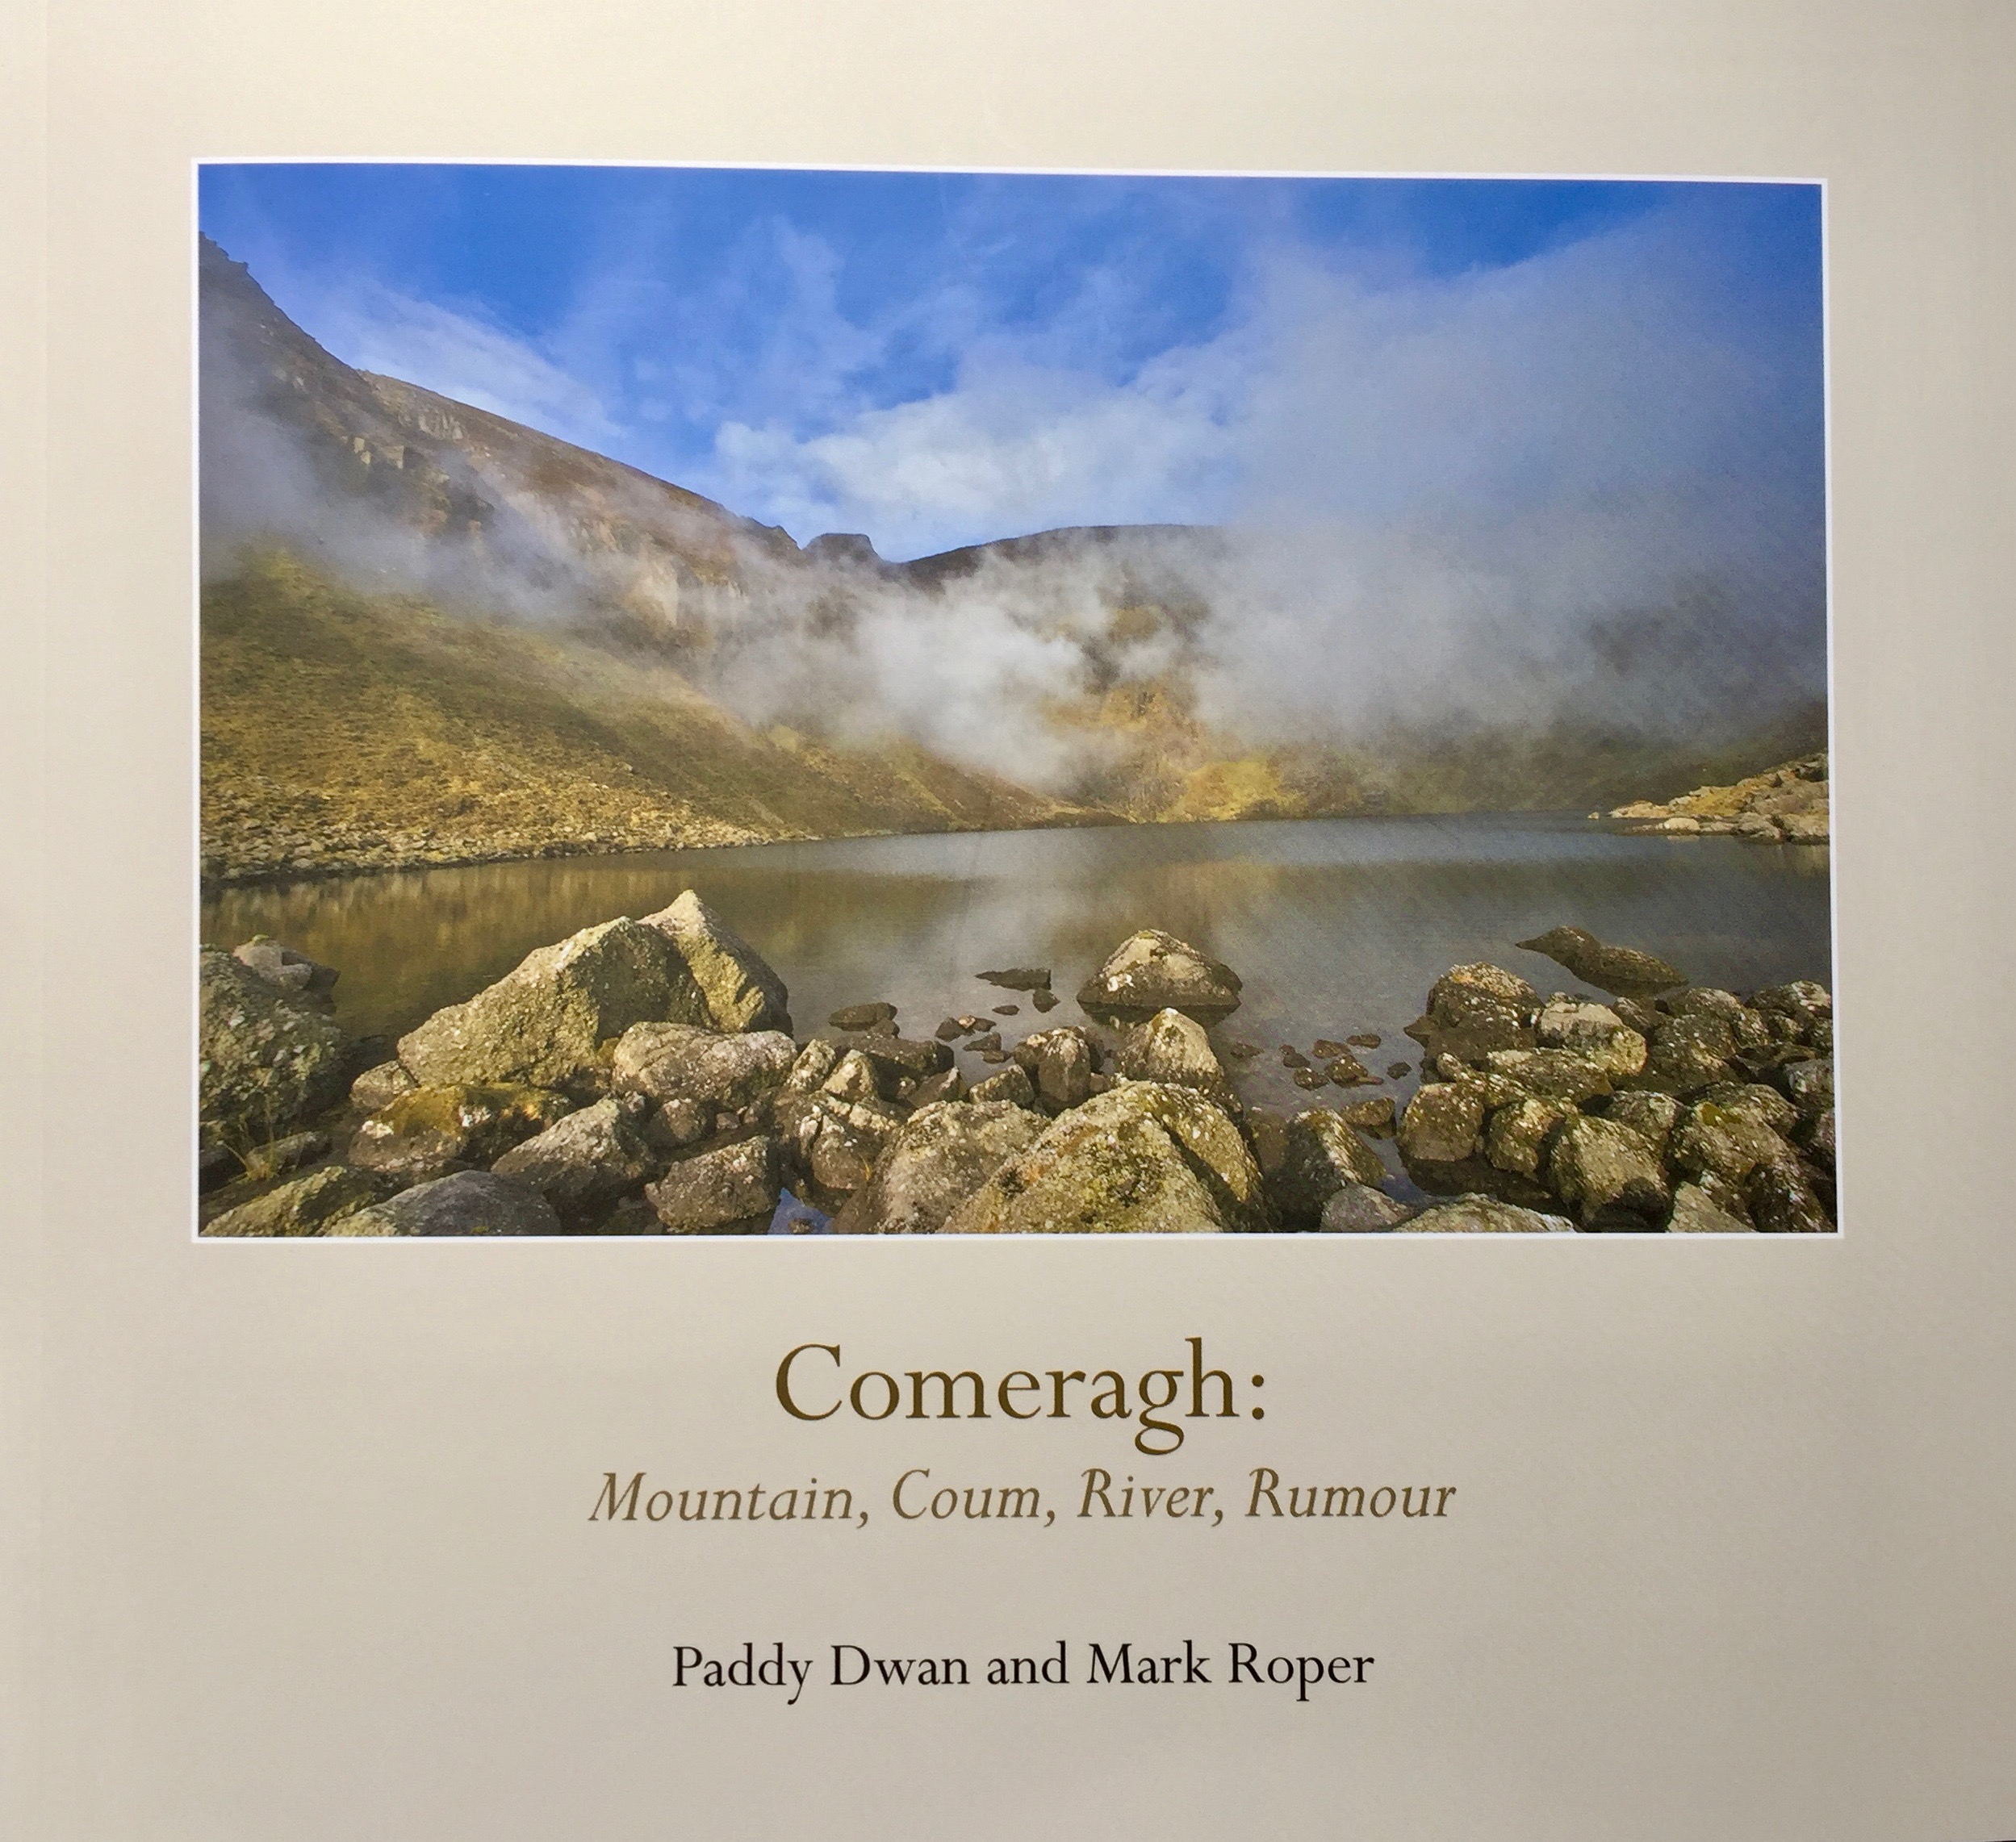 Comeragh: Mountain, Coum, River, Rumour